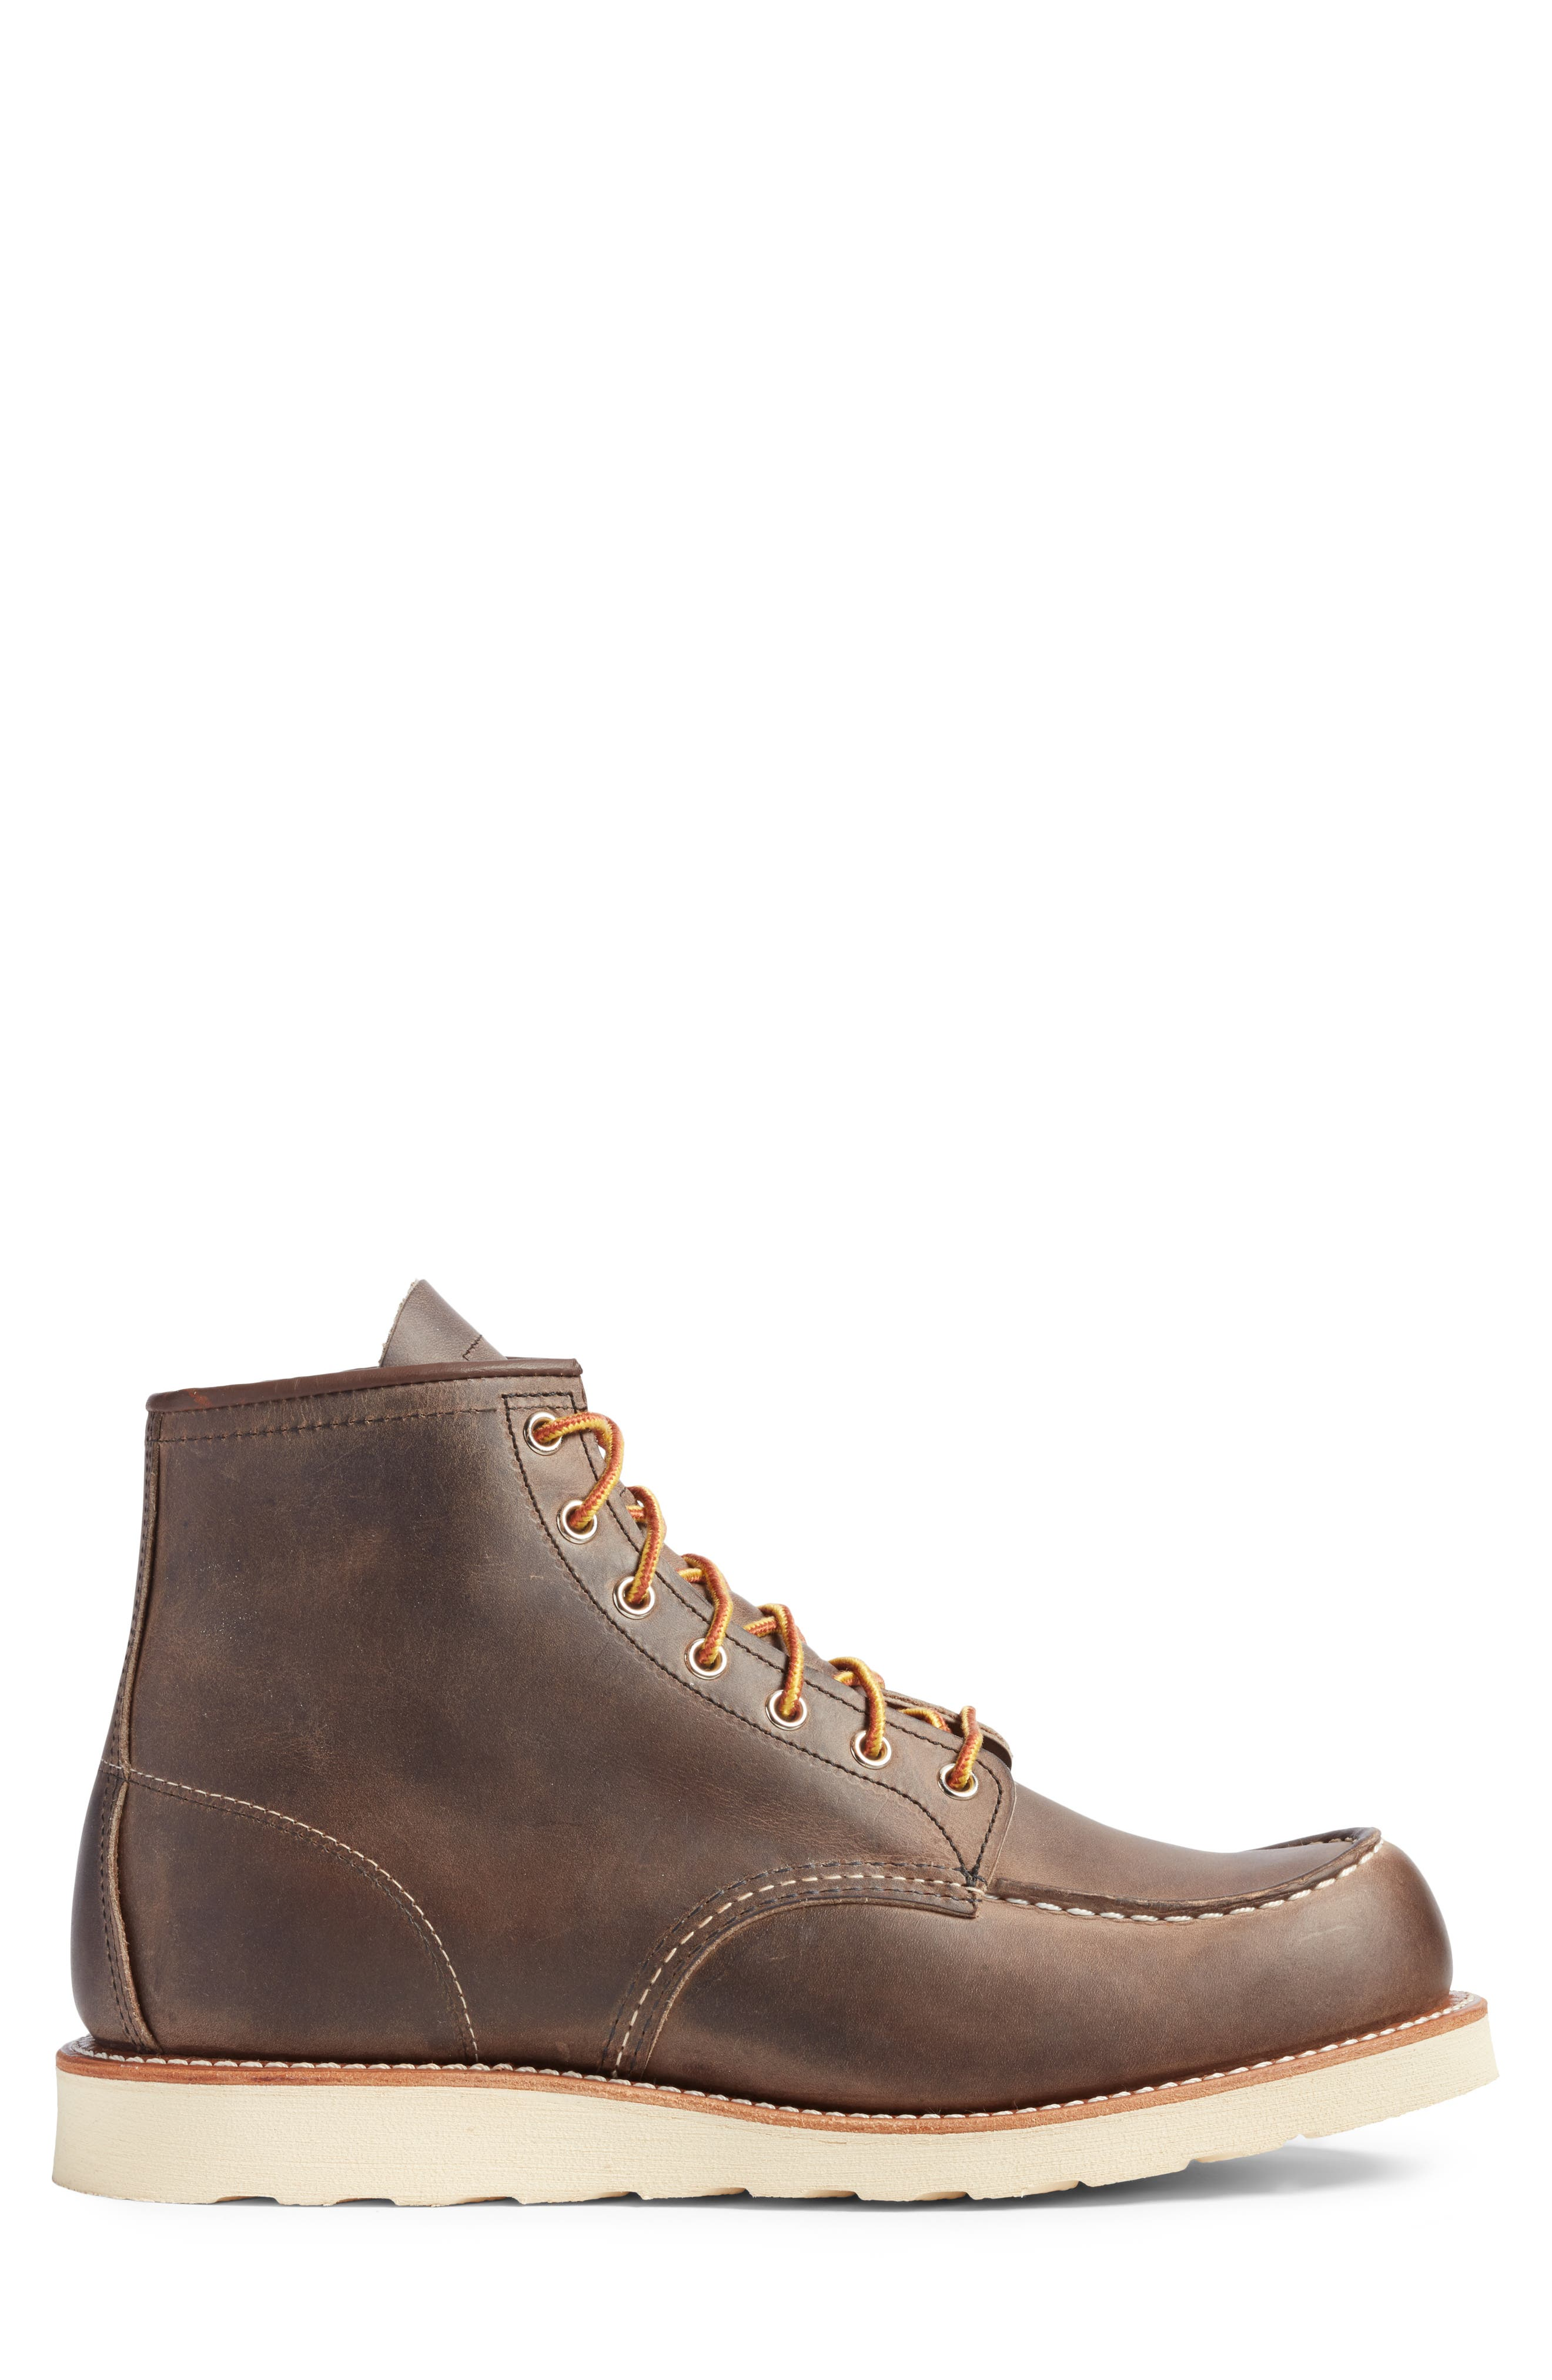 6 Inch Moc Toe Boot,                             Alternate thumbnail 3, color,                             Grey Leather